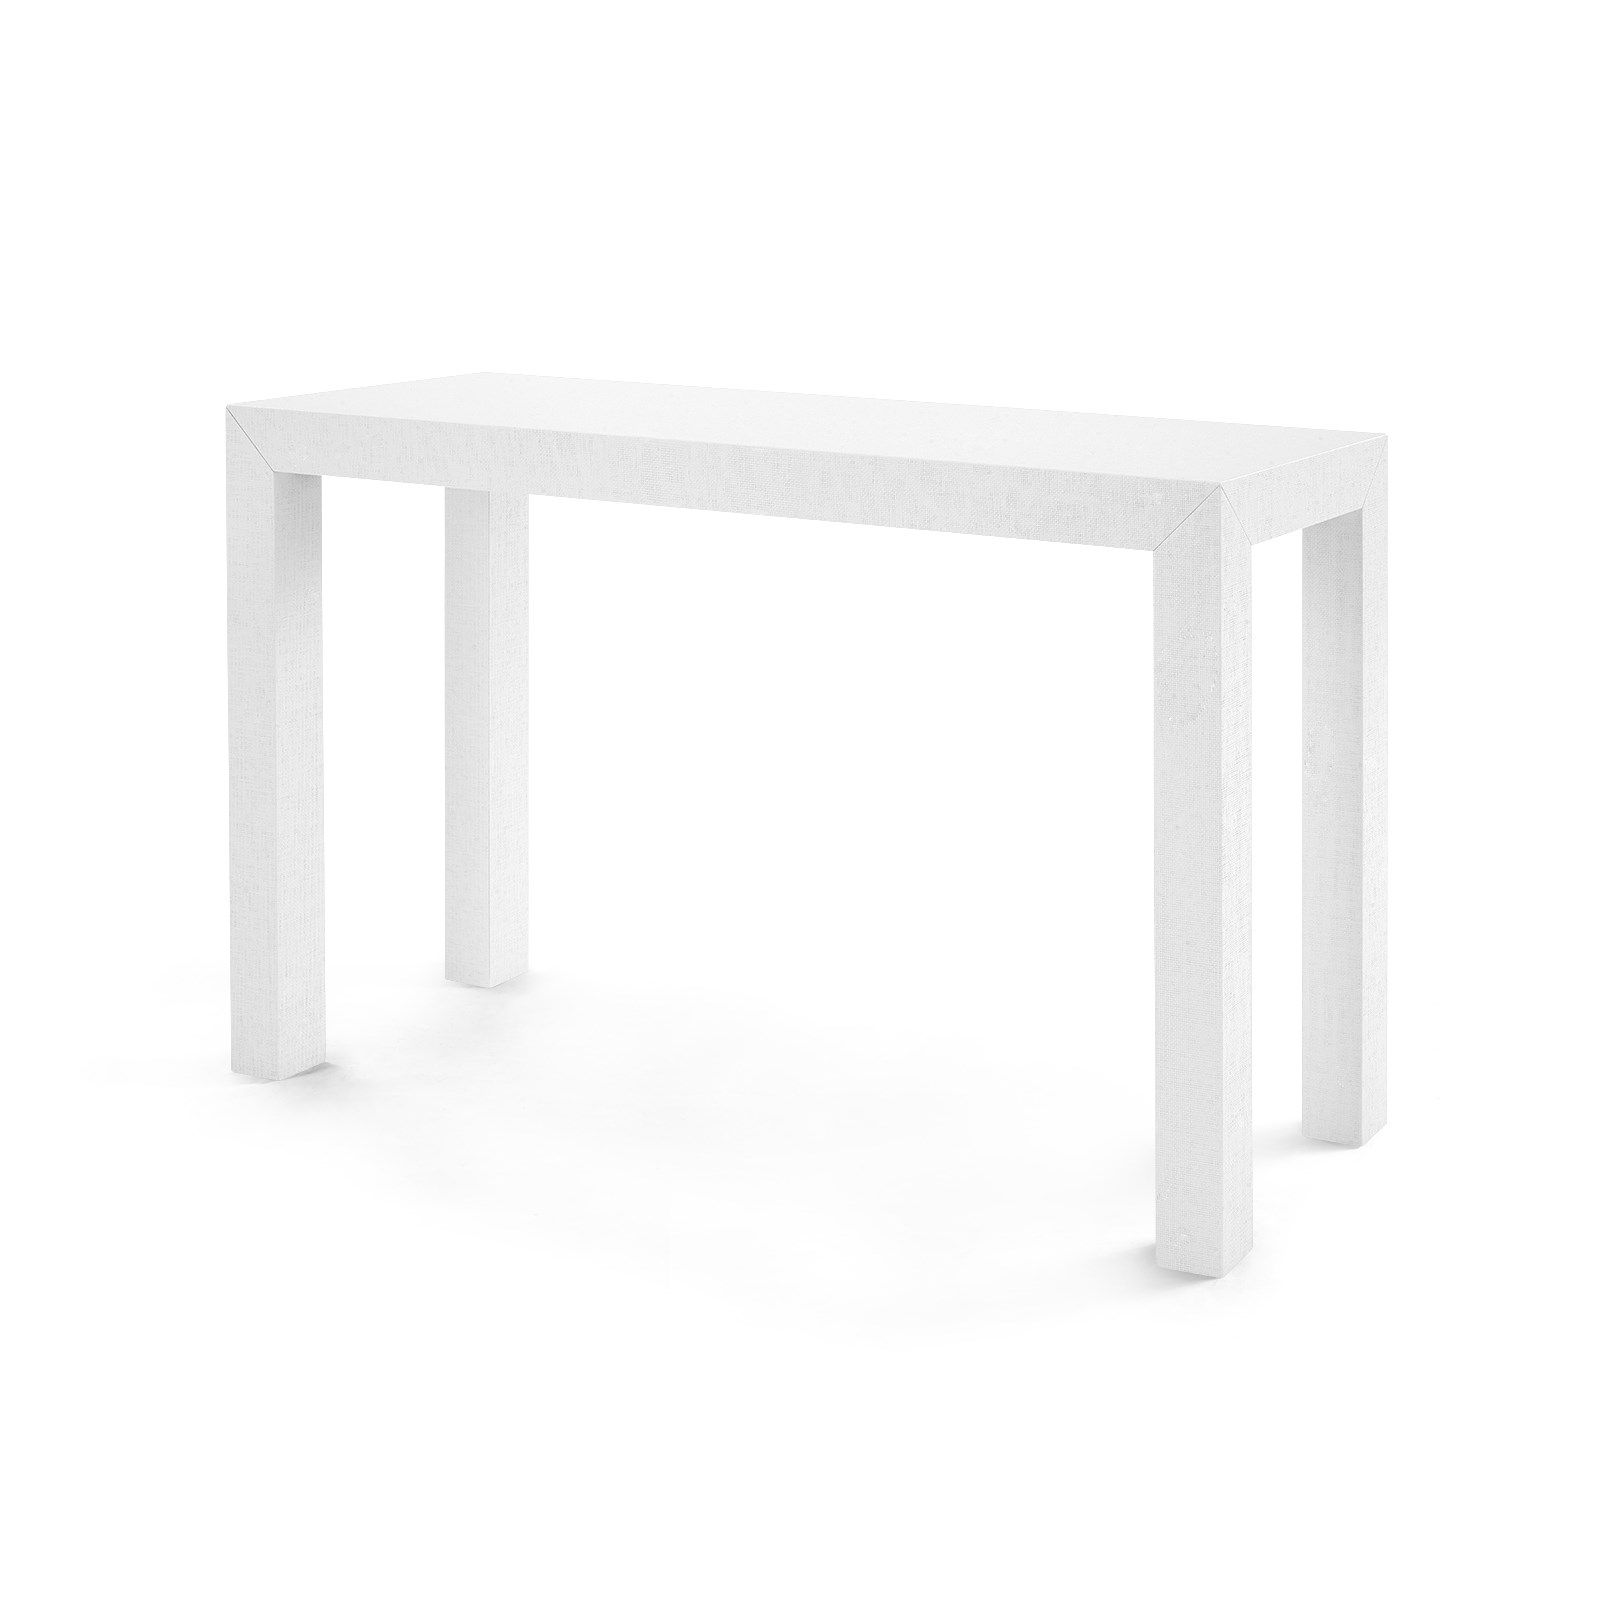 Admirable Parsons Console Table White Bungalow 5 Dutton Mills Download Free Architecture Designs Lukepmadebymaigaardcom